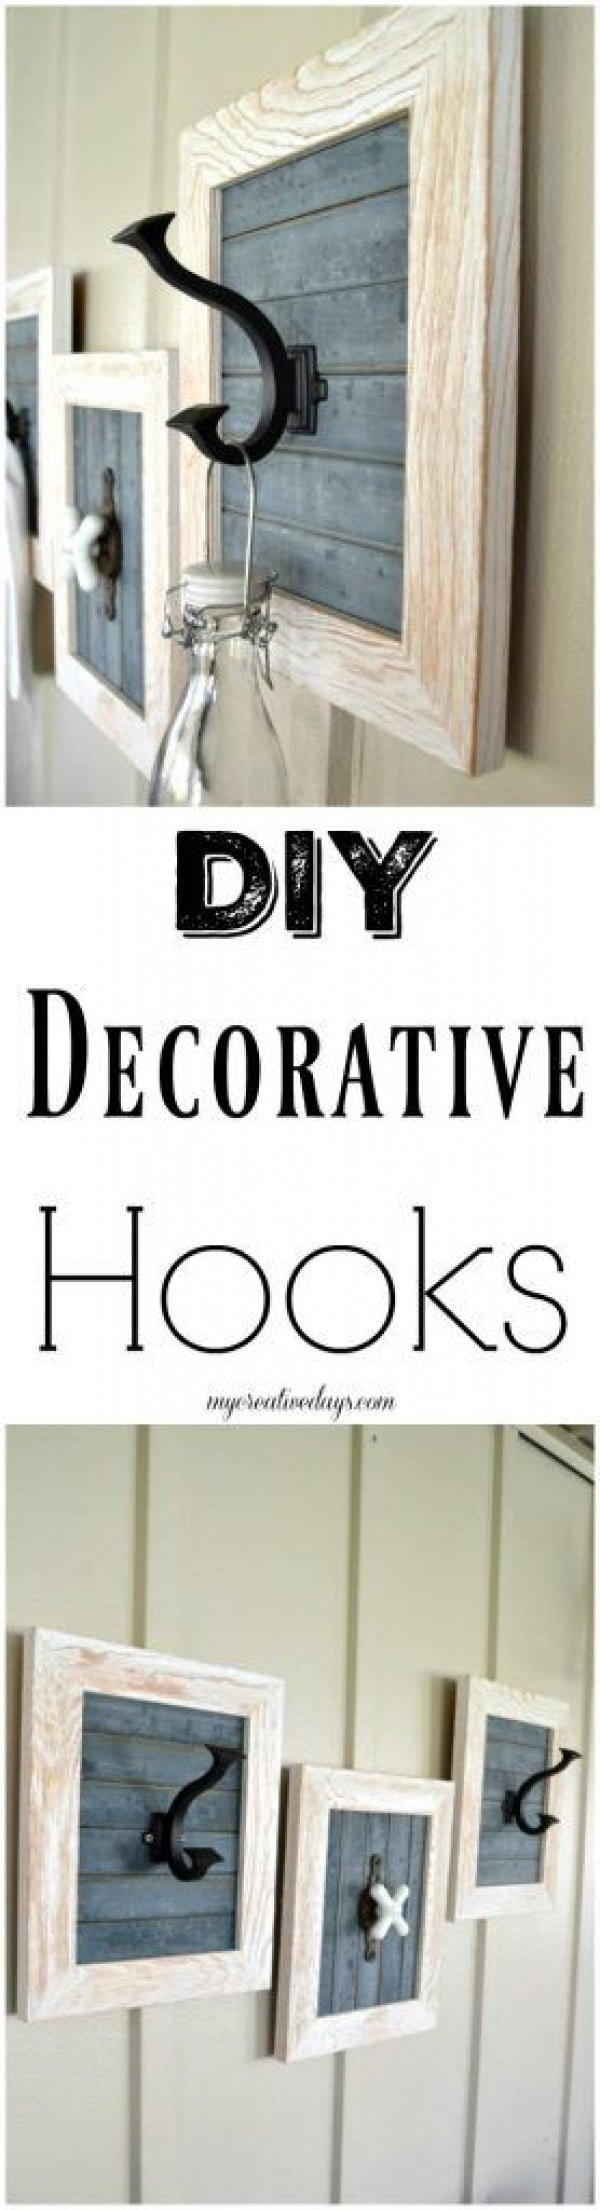 How to make a   decorative hooks. Looks easy enough!